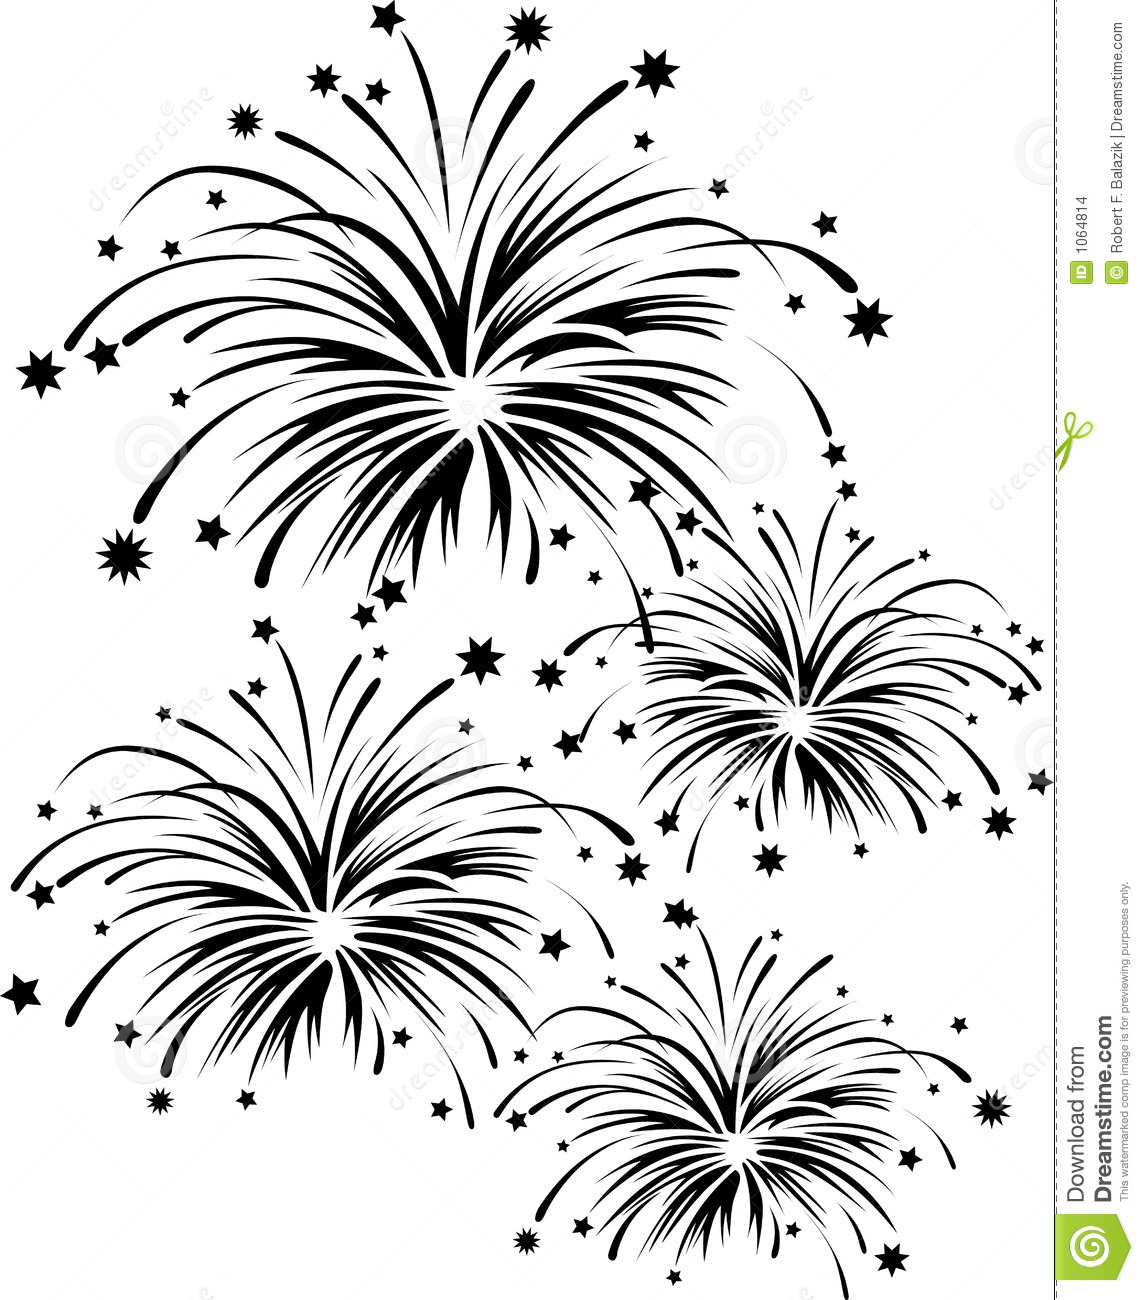 Raster Graphic Depicting A Fireworks Display